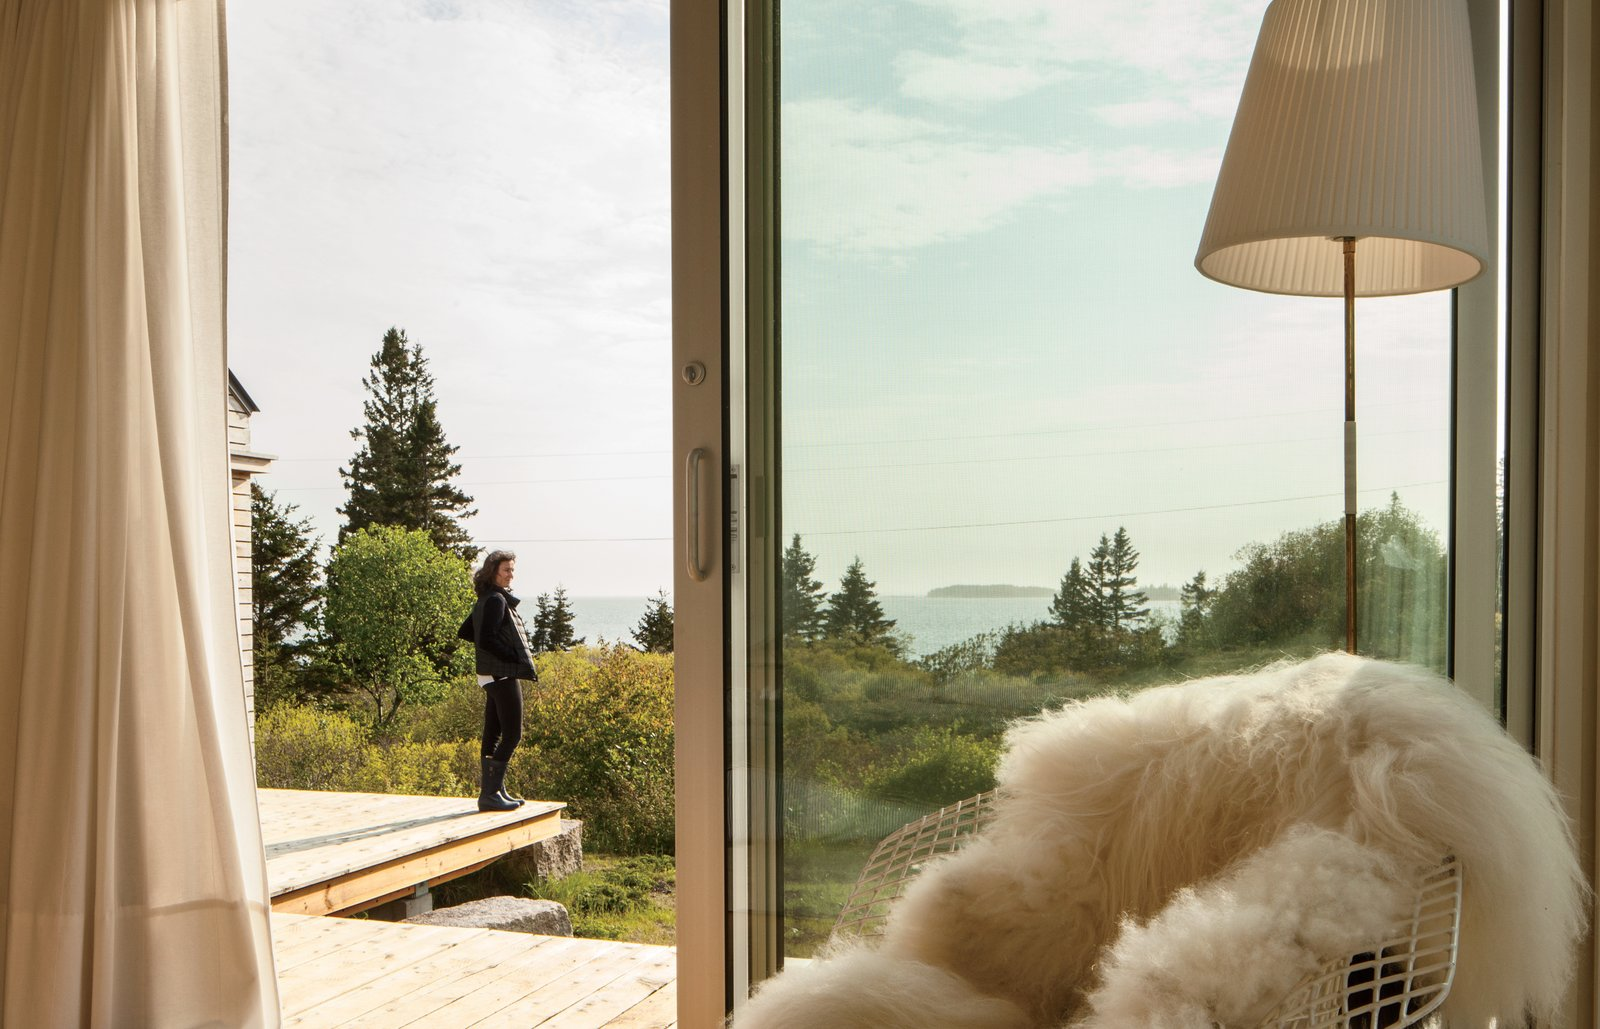 """Resident Nadja van Praag enjoys the view from the deck that connects the trio of structures. The idea for the deconstructed plan was inspired in part by Alvar Aalto sketches of a """"peeled apart"""" summer cabin, says architectural designer Riley Pratt, in which interconnected volumes surround a central courtyard. A Cluster of Cabins in a Former Quarry Makes a Simple Vacation Escape - Photo 5 of 13"""